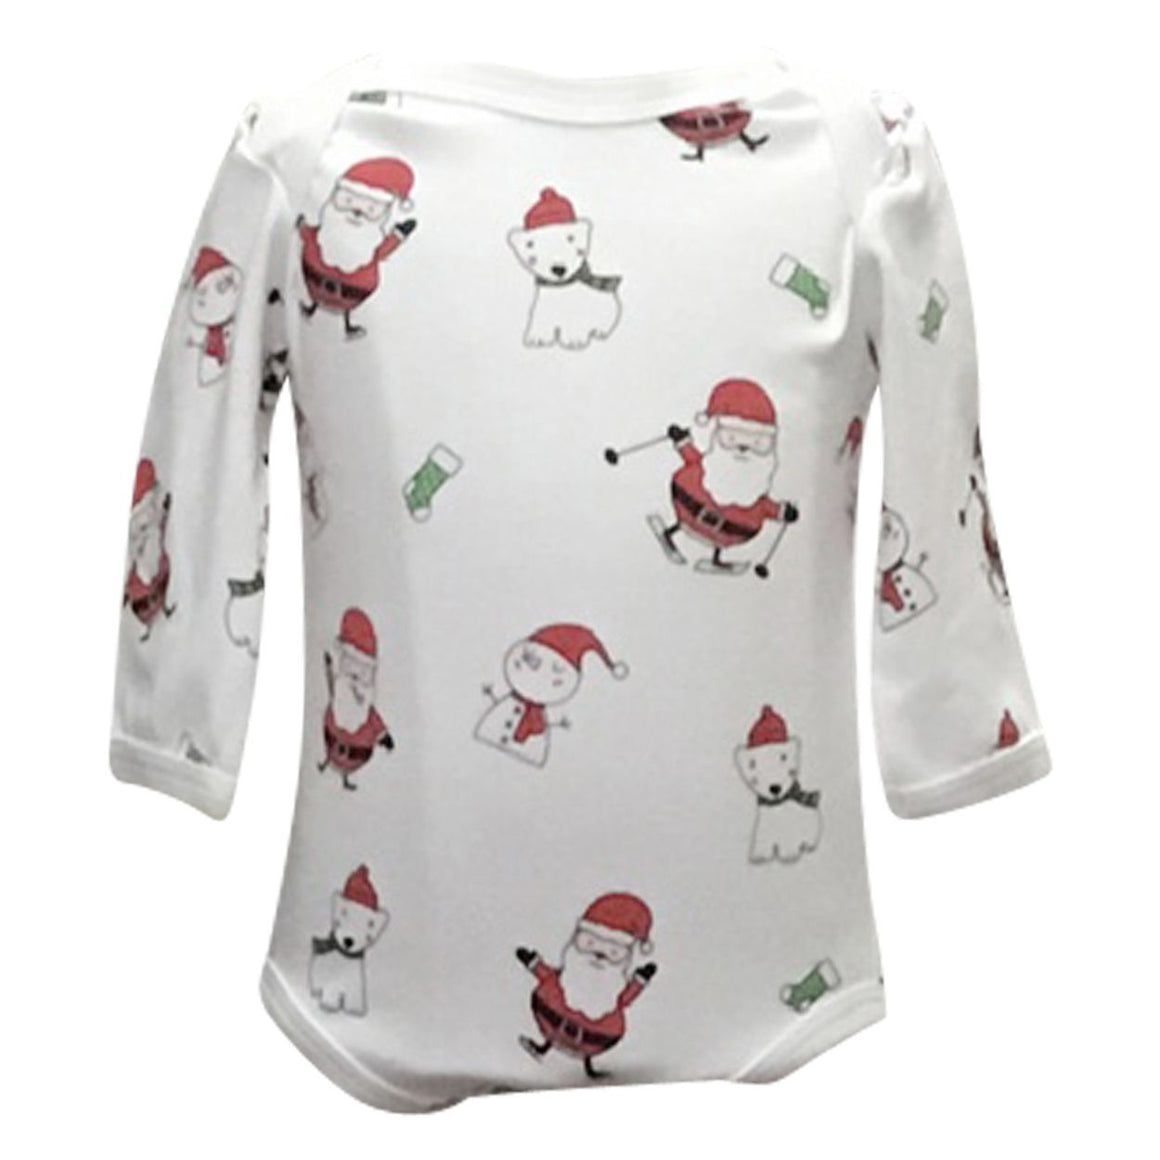 Cotton Christmas-Themed Onesie